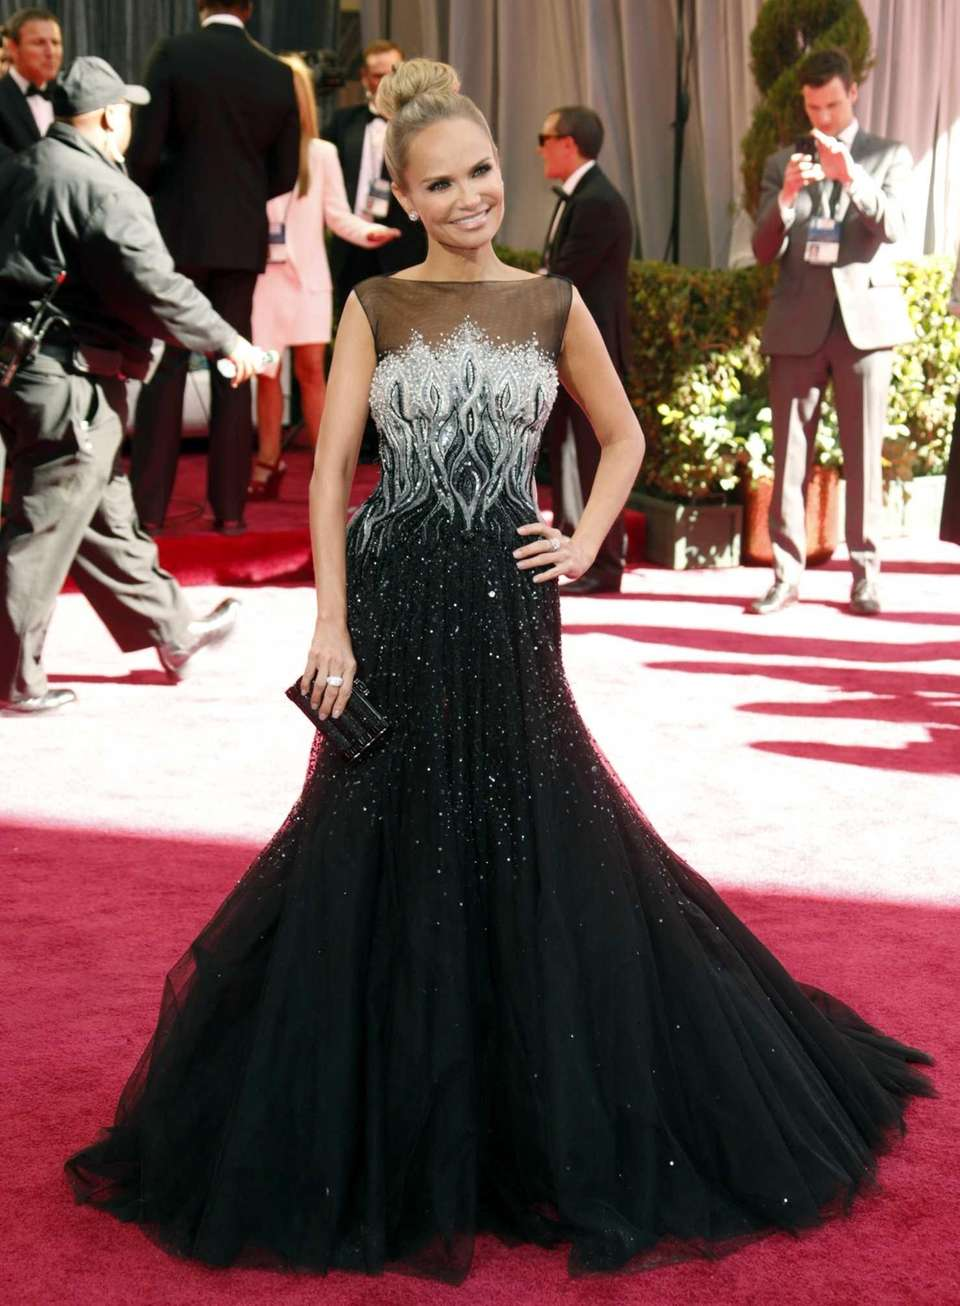 Kristin Chenoweth arrives at the 85th Academy Awards